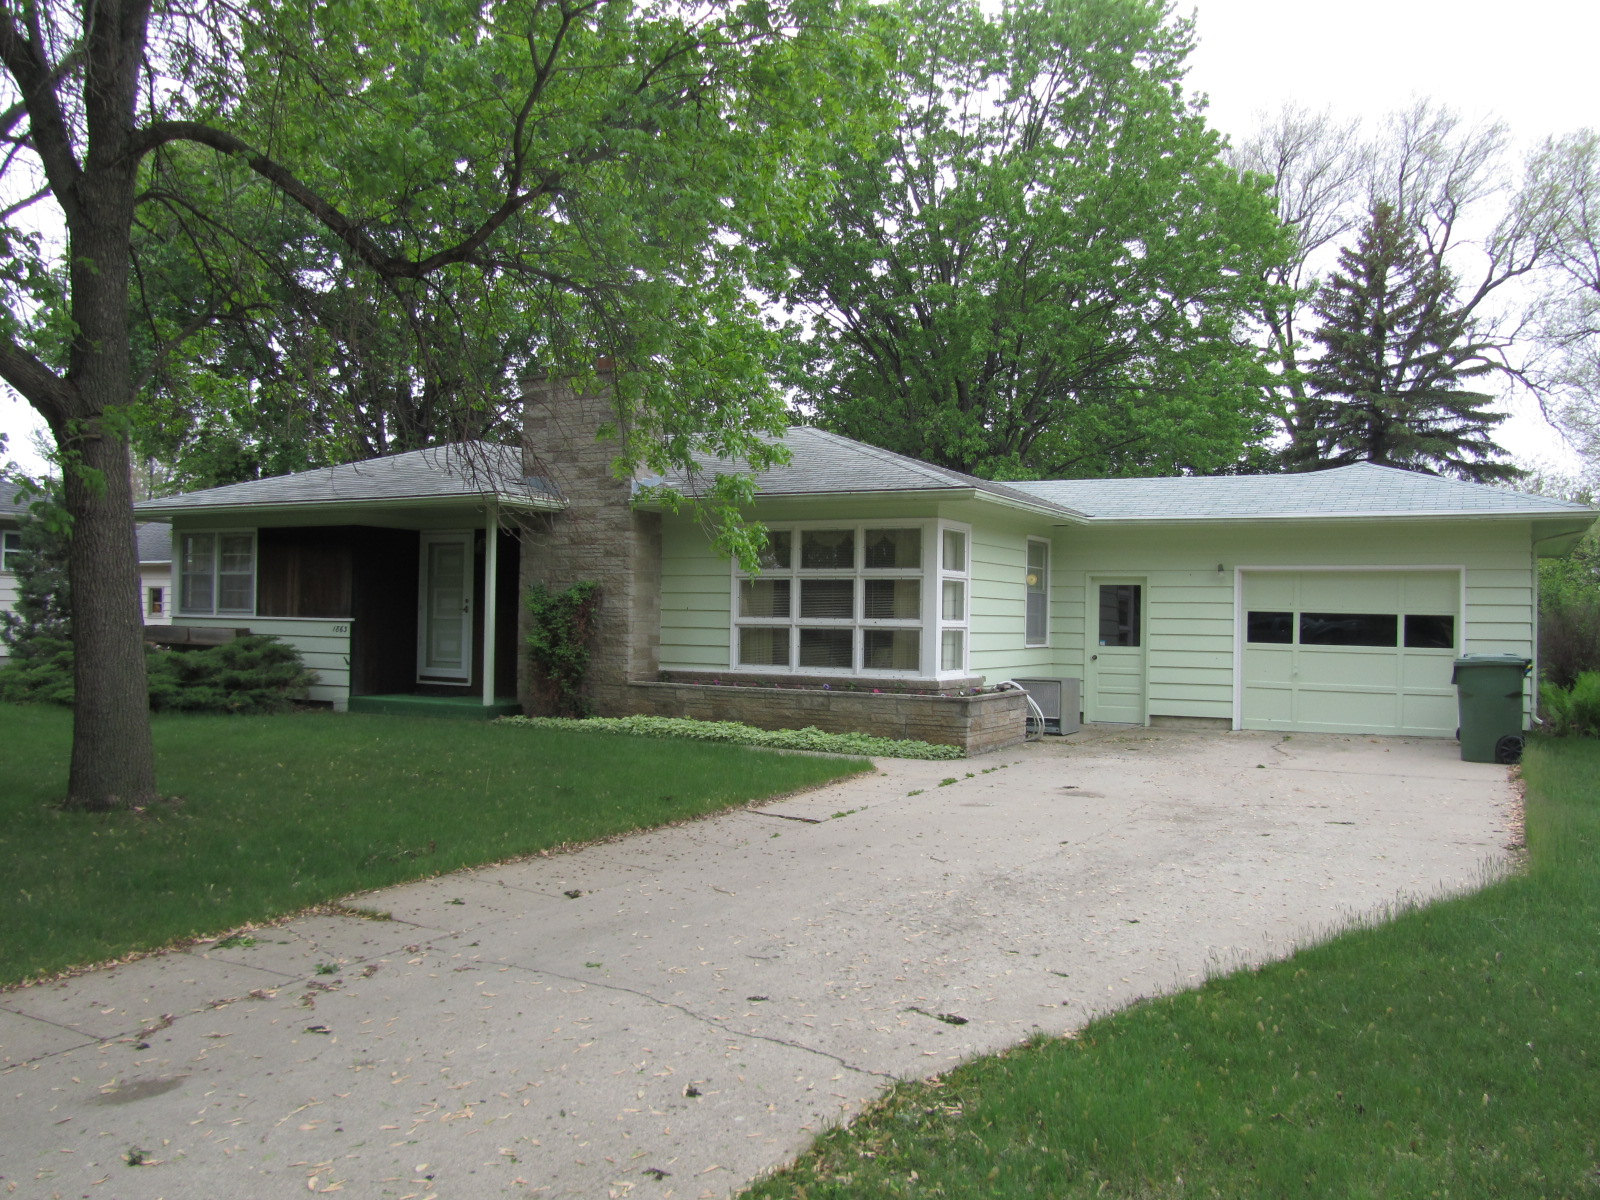 1863 Wisconsin Ave SW, Huron, South Dakota 57350